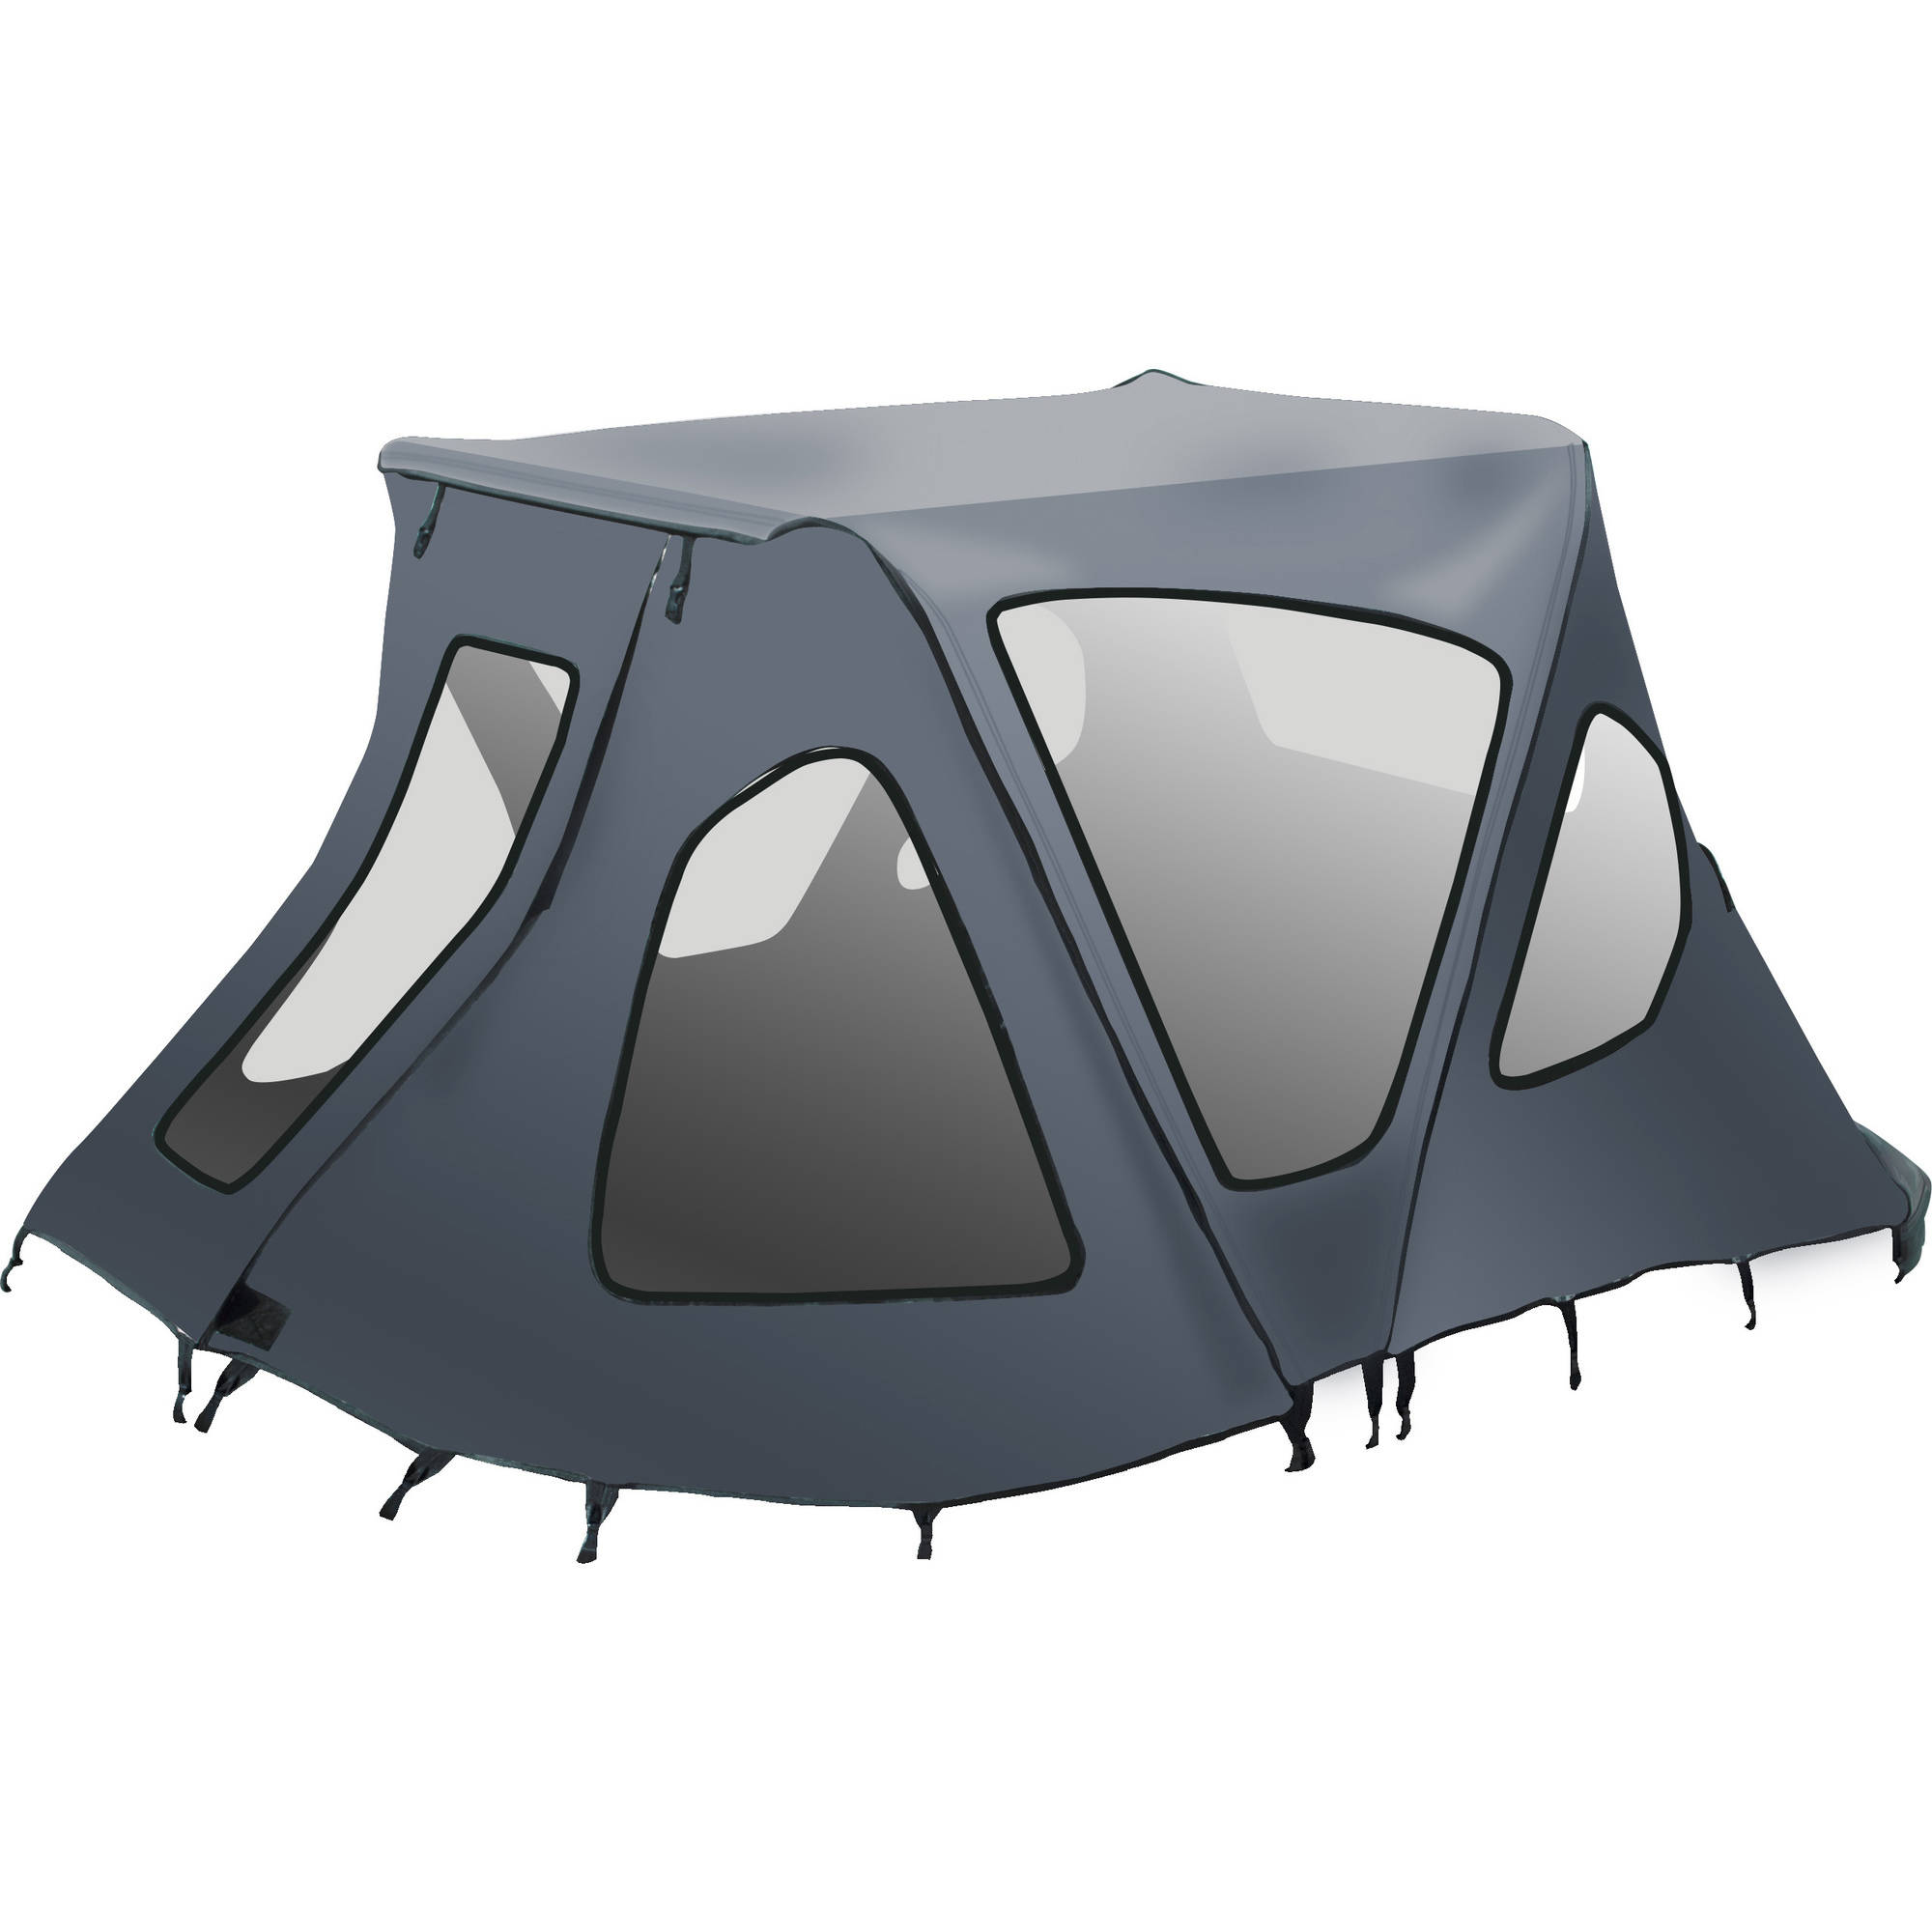 ALEKO BWTENT380G Winter Canopy Boat Tent Rain Sun Wind Snow Waterproof Shelter Covering for Inflatable Boat, Gray